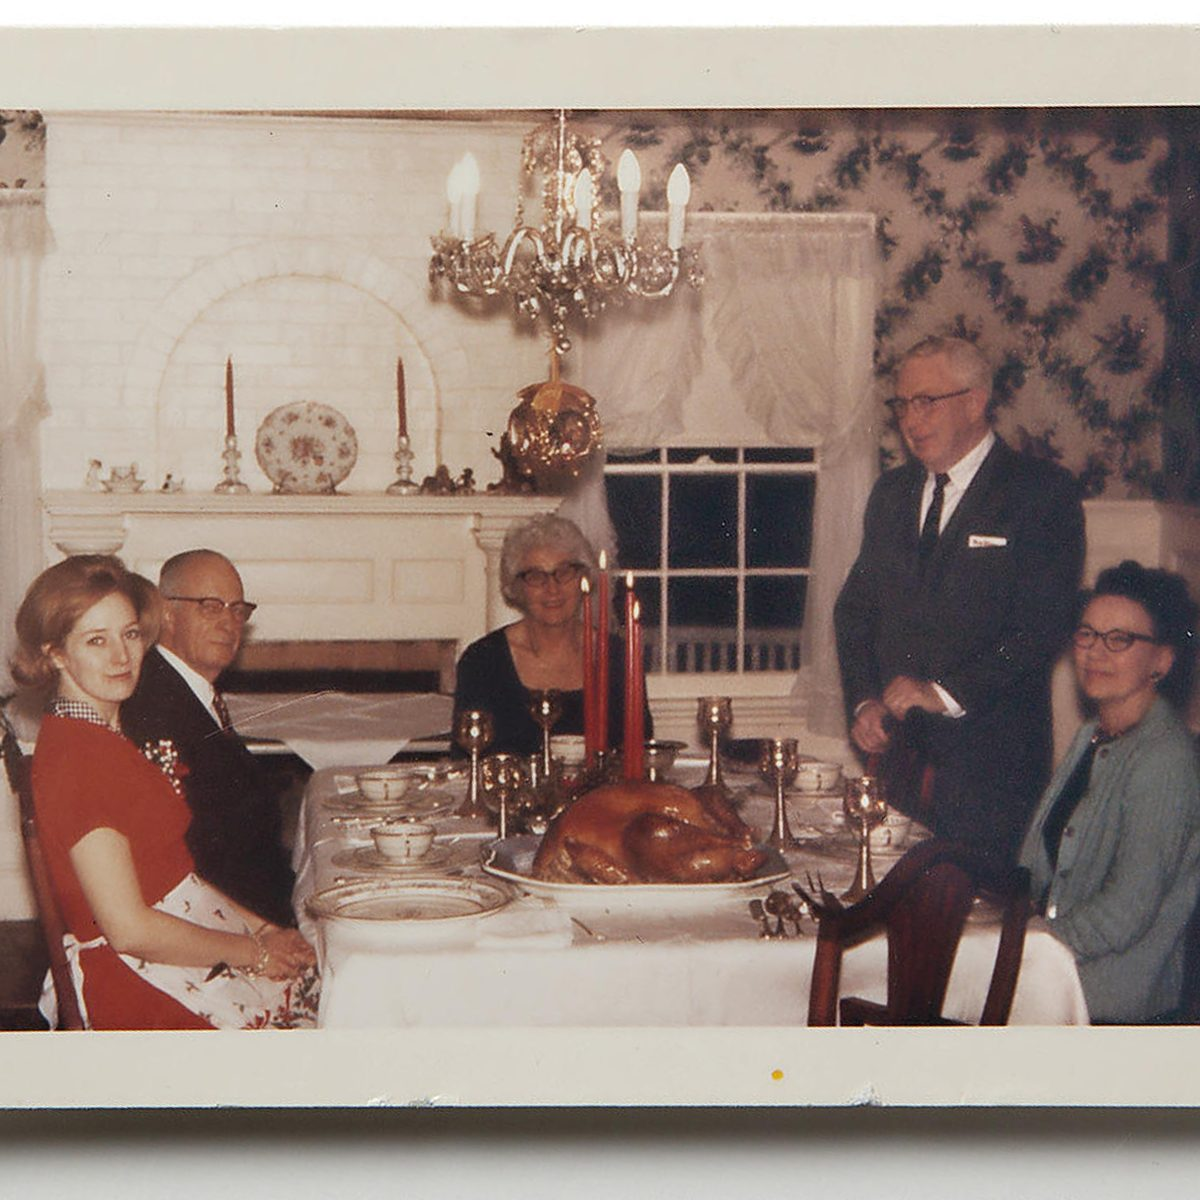 people around thanksgiving table with lit red candles